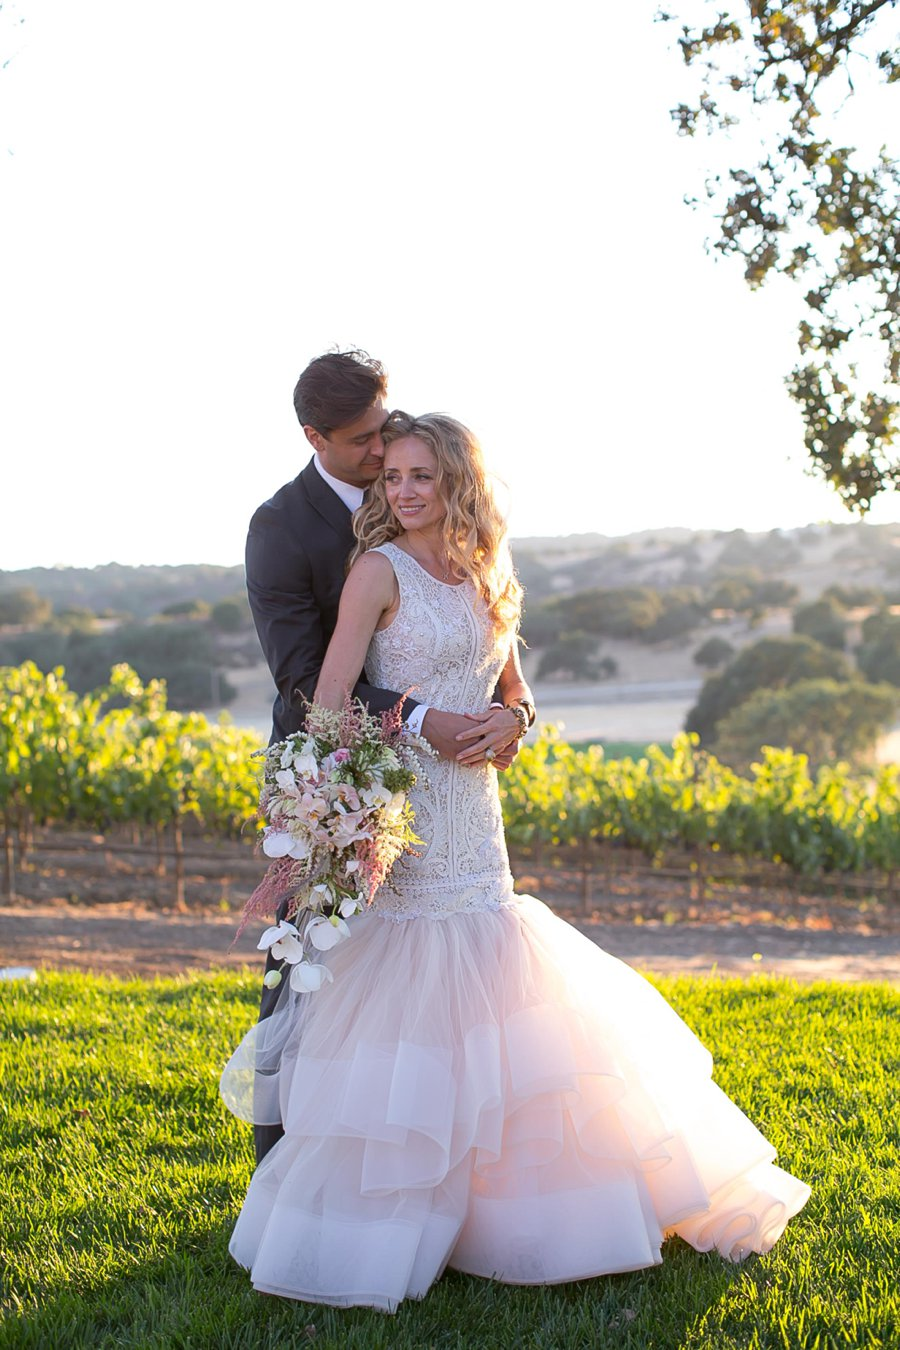 STOLPMANN VILLA AND VINEYARDS | LOS OLIVOS WEDDING PHOTOGRAPHER CHRIS HOLT PHOTOGRAPHY_055.jpg